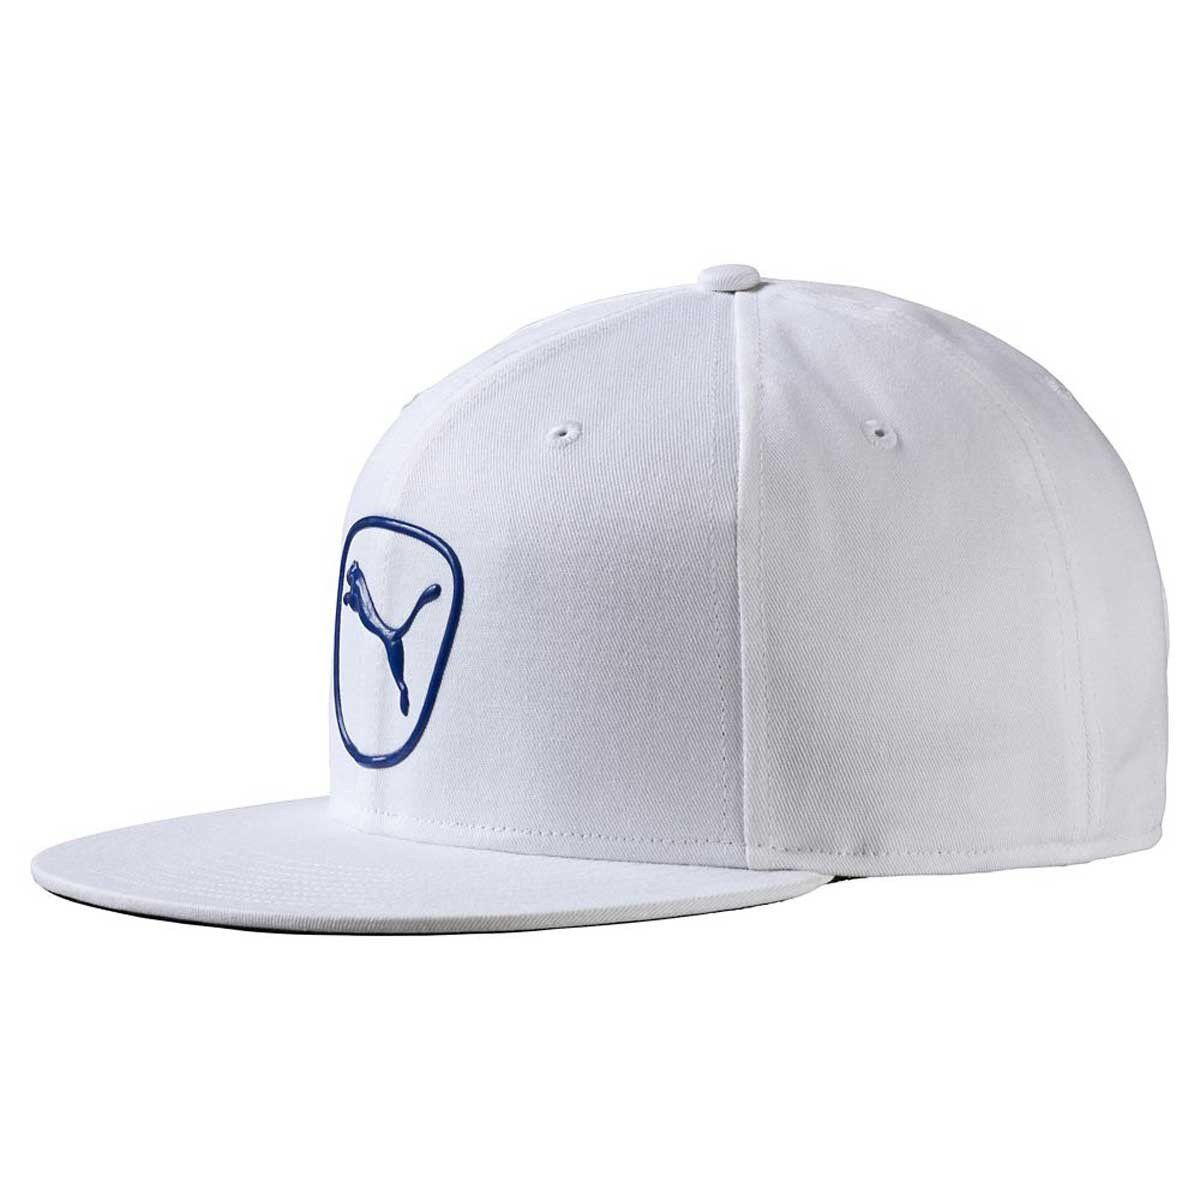 7756adedca3 Puma Golf White Surf the Web Cat Patch 2.0 Snapback Cap in 2018 ...